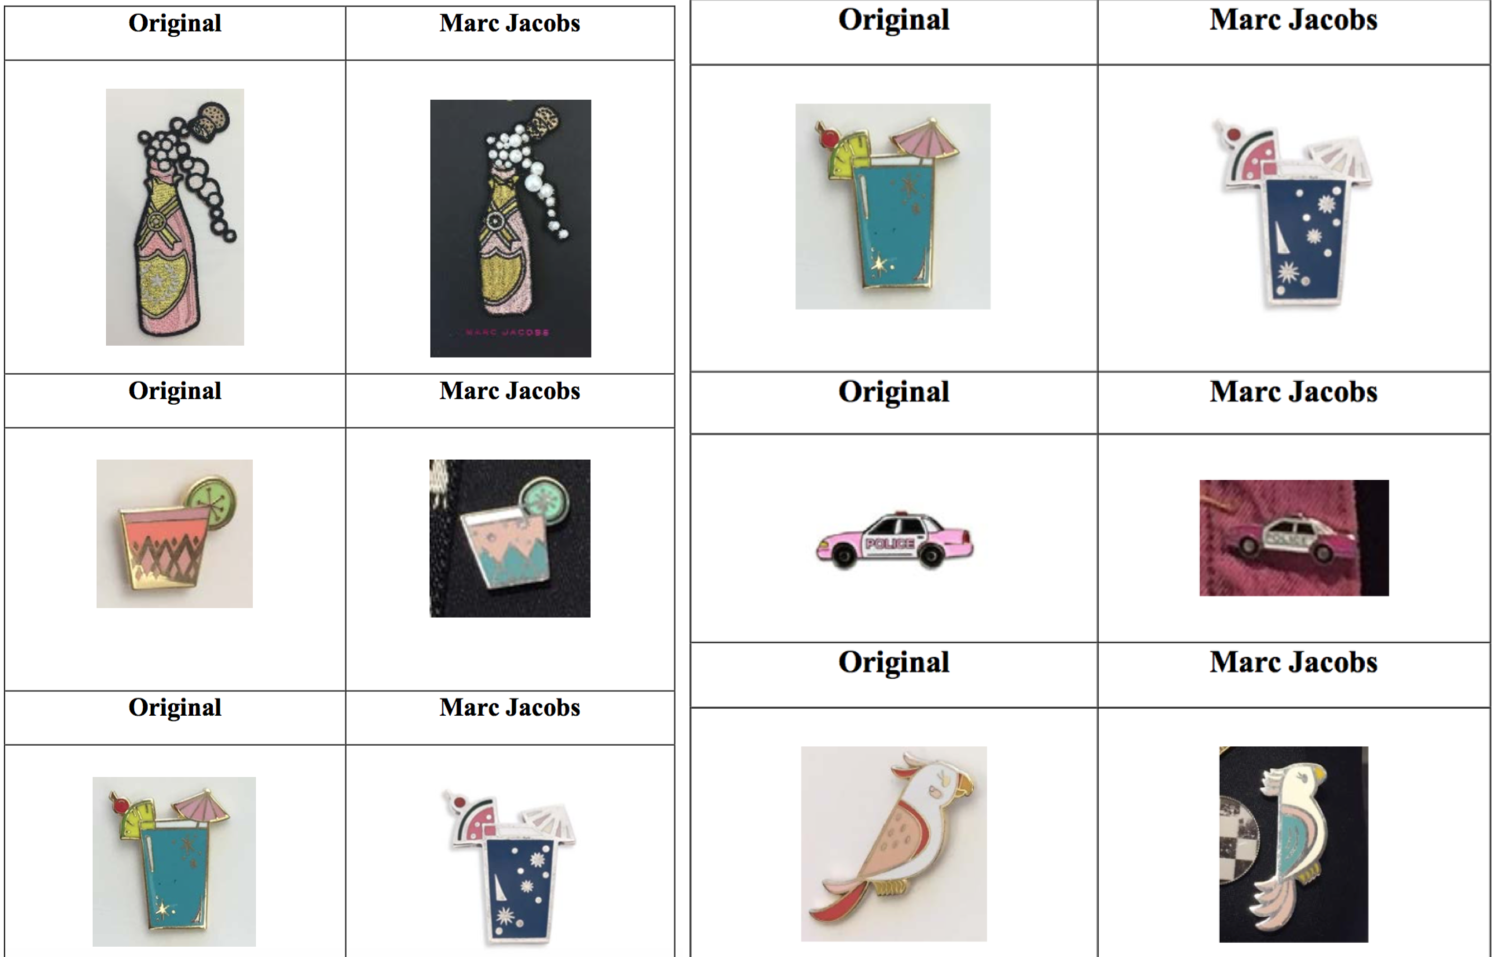 The artists' designs (left) & Marc Jacobs' allegedly infringing versions (right)